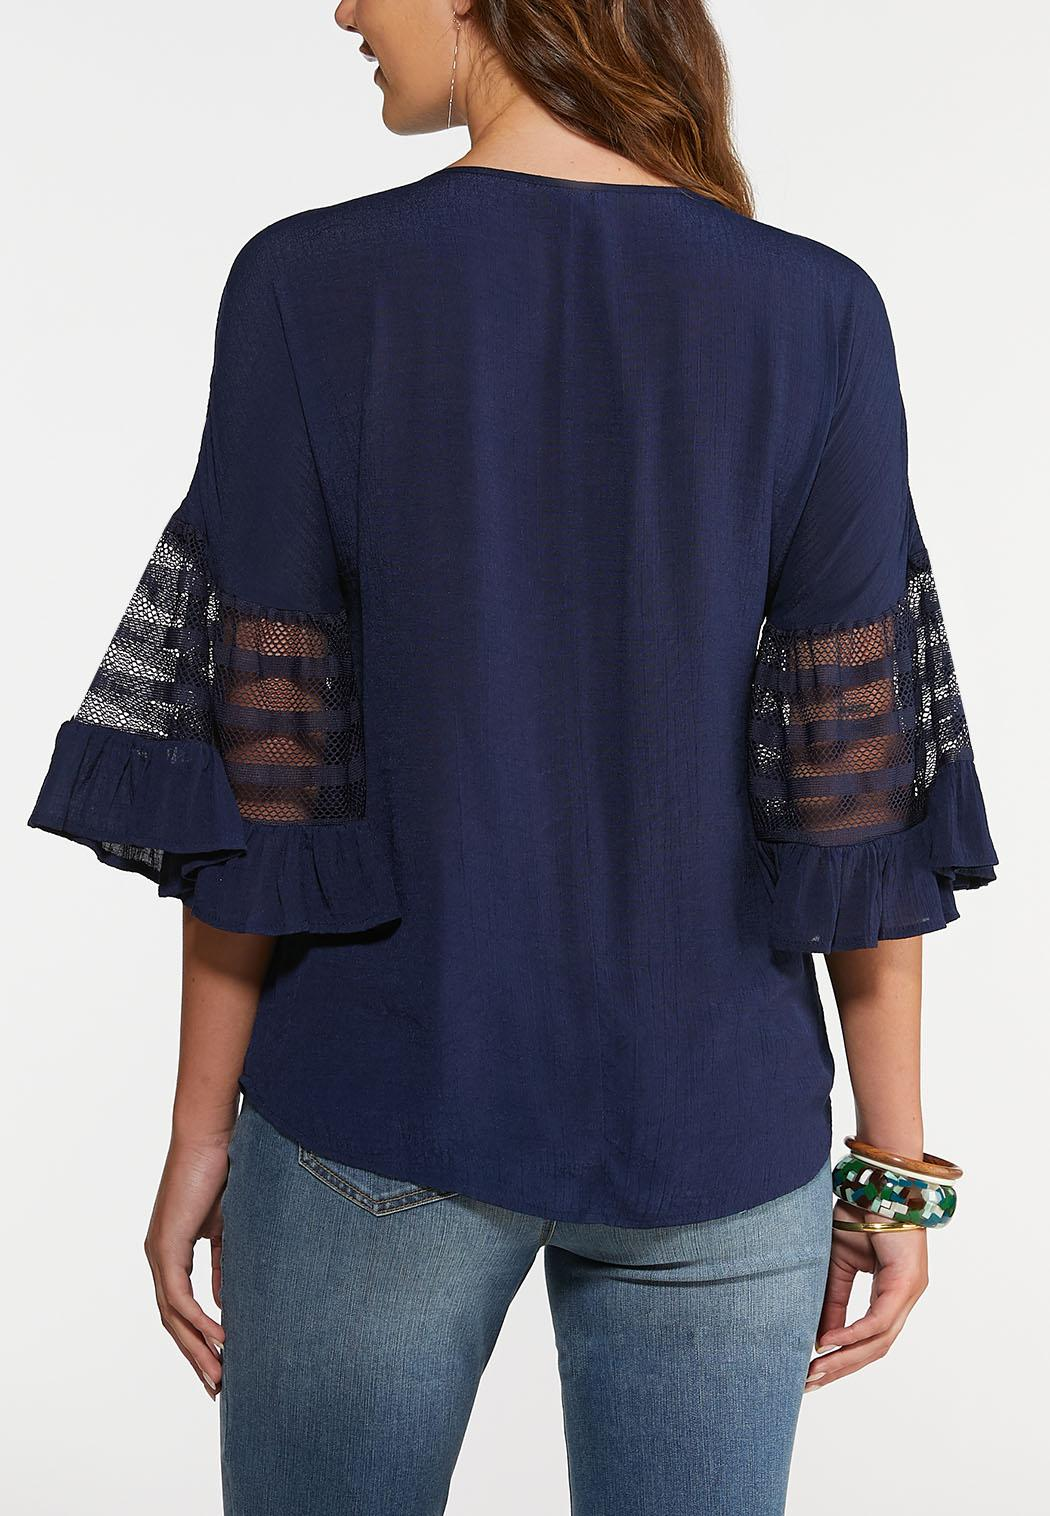 Plus Size Mesh Sleeve Pullover Top (Item #43969084)